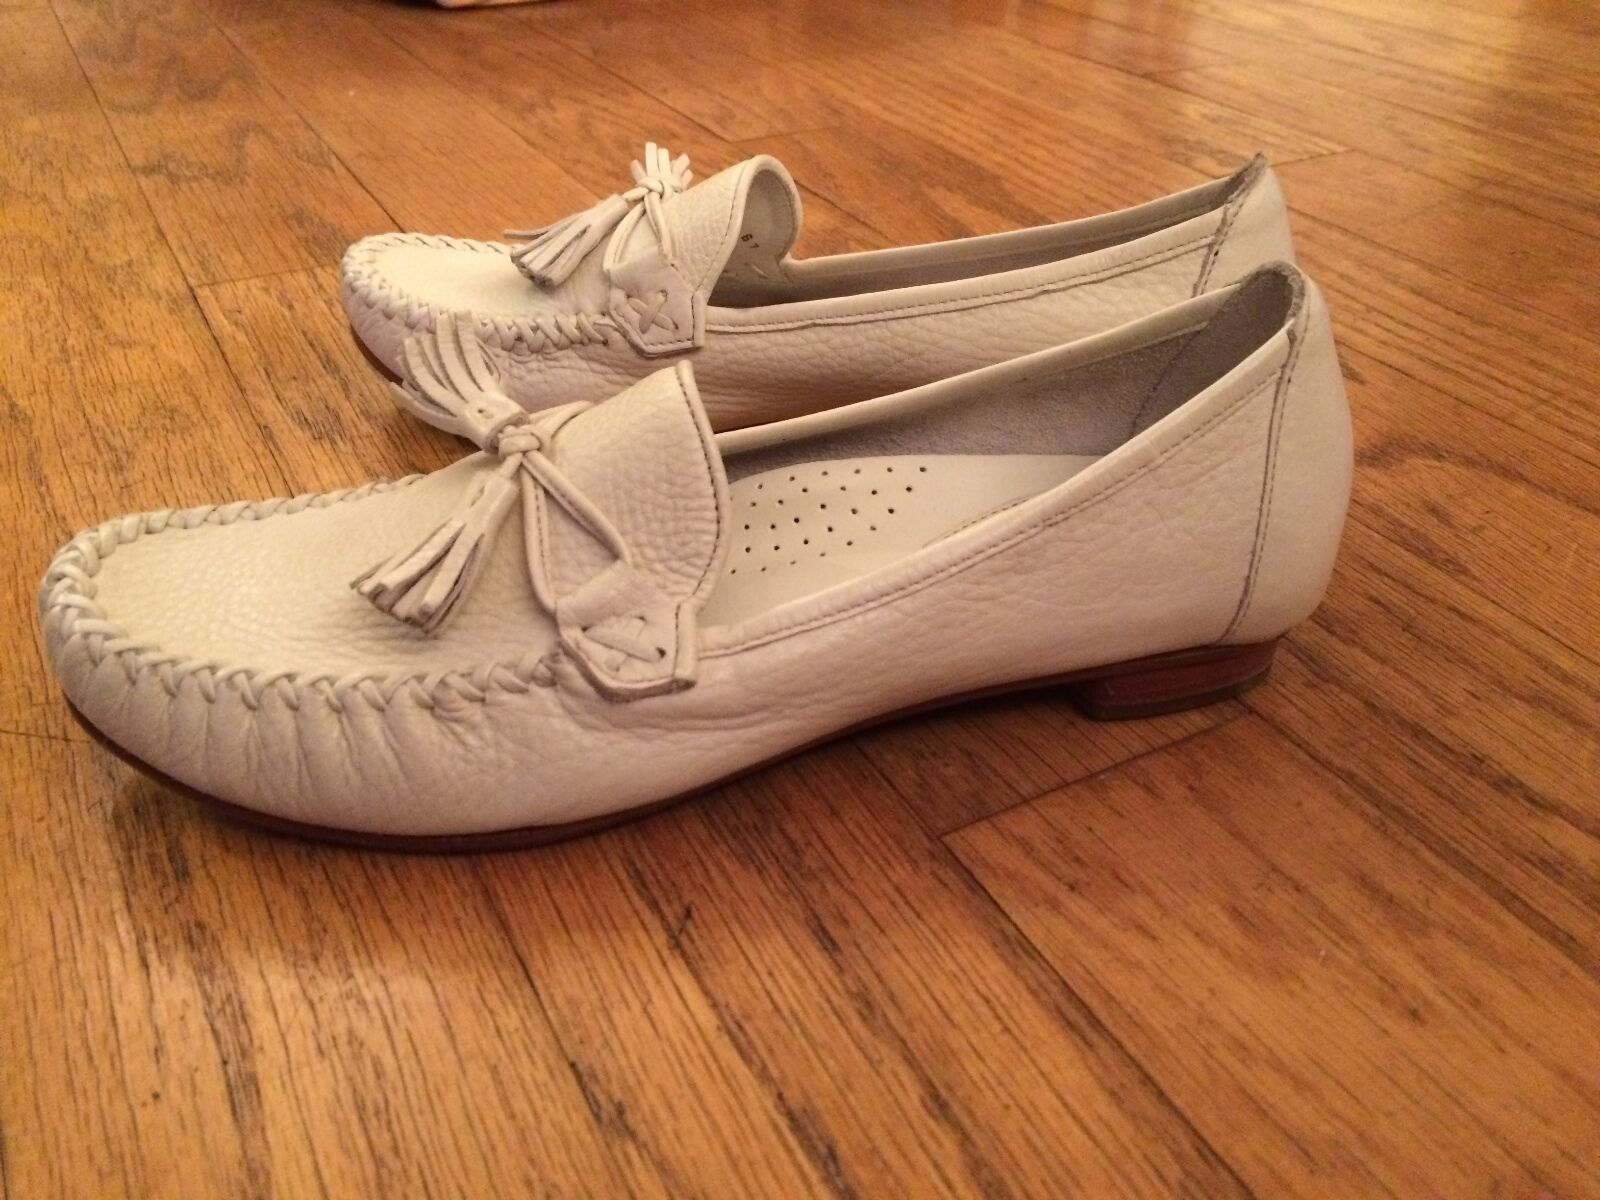 COLE HAAN Leather Slip-on Loafers / Moccasins w/ Stitched-on Apron & Tassels 7B